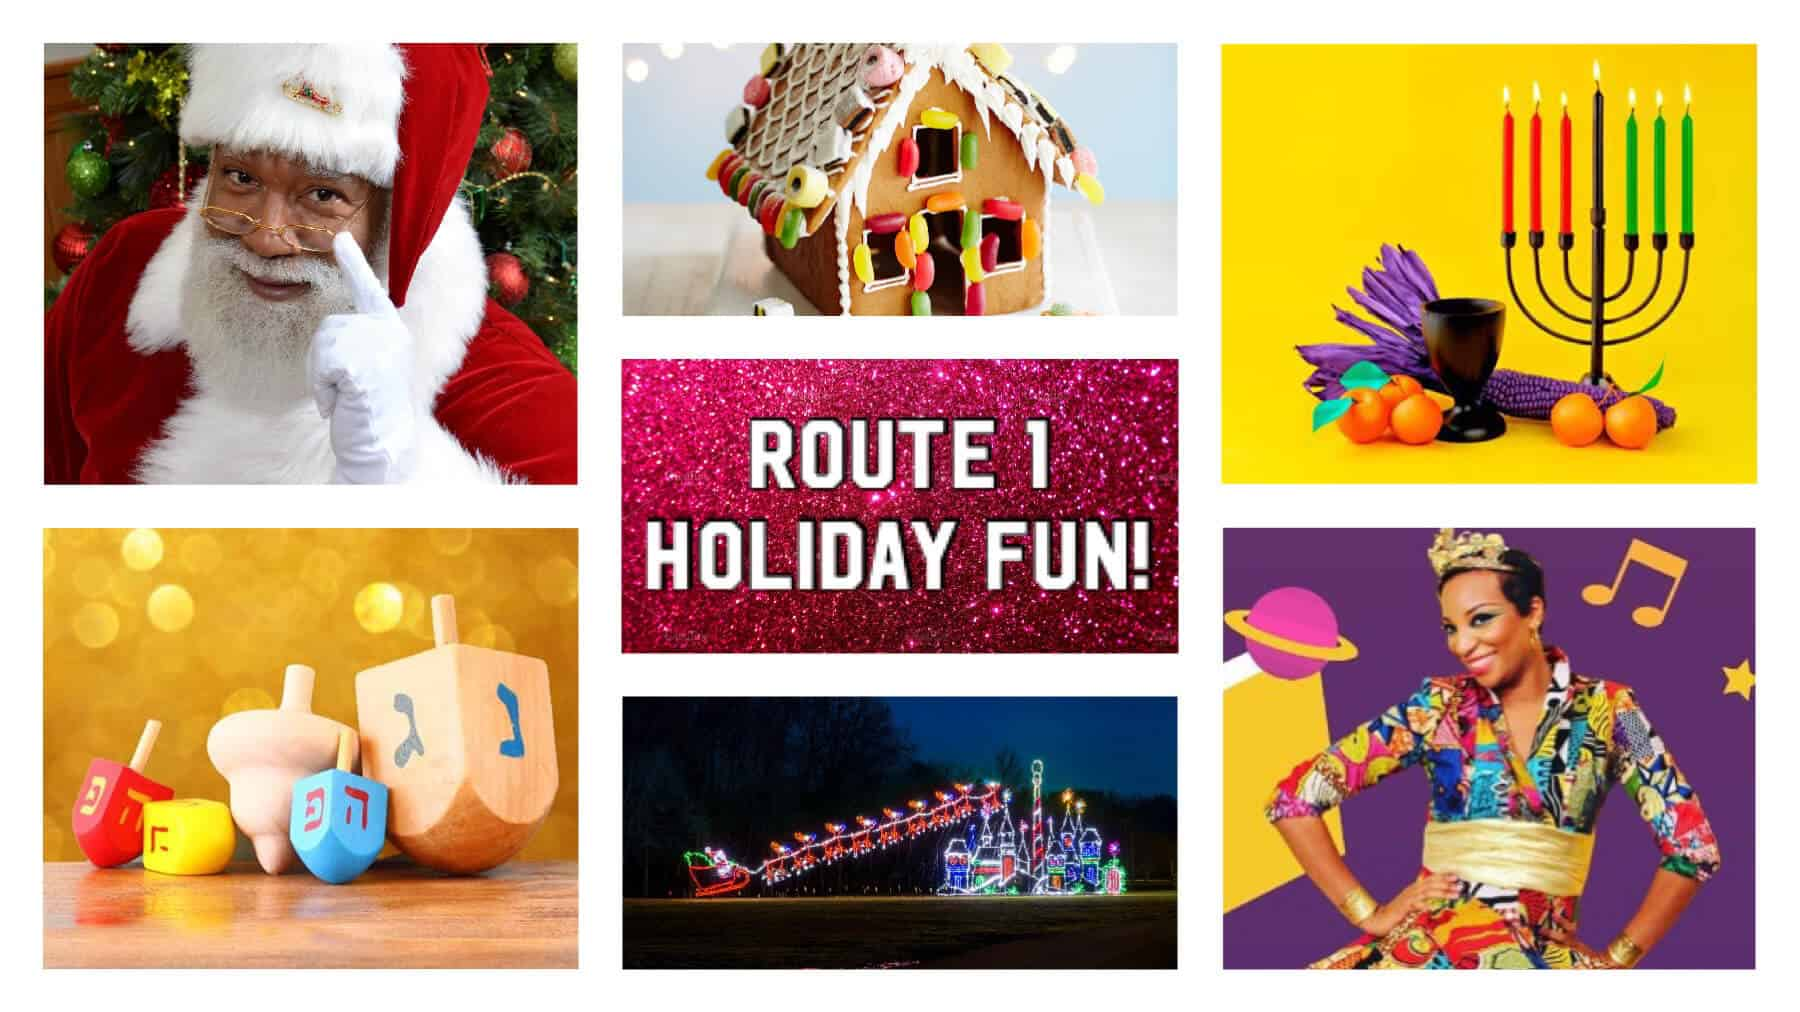 Route 1 Holiday Fun Guide